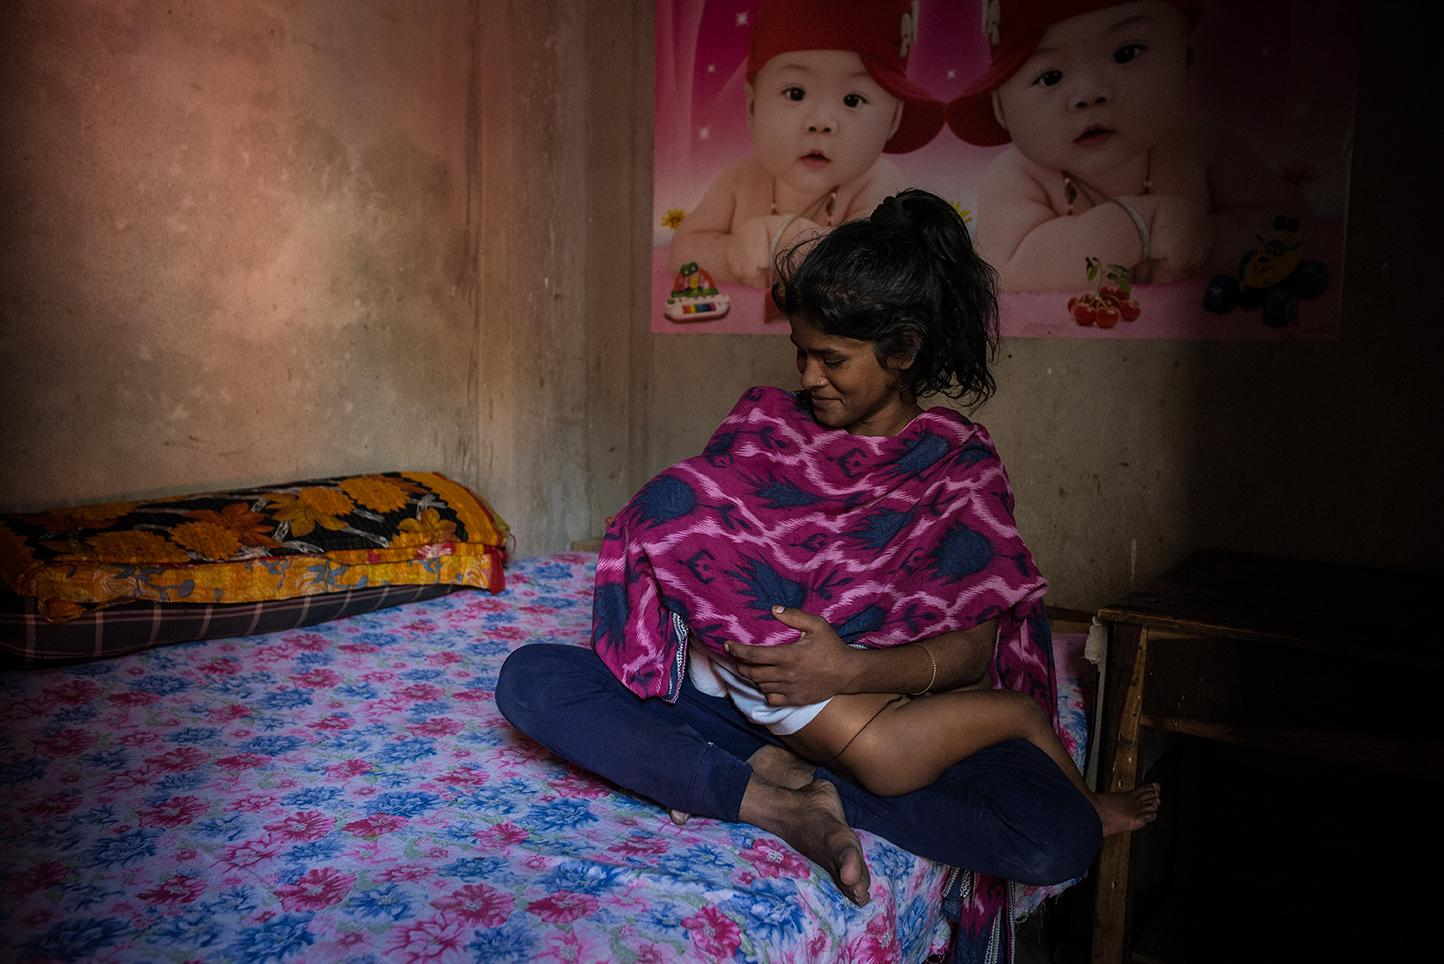 Tania, 15, with her son Thangil, 2, is a sex worker in Daulatadia Brothel in Daulatadia, Rajbari, Bangladesh. She is not sure who the father is, but it is a client. Daulatadia is considered one of the largest brothels in the world and serves roughly 2500-3000 men daily. Bangladesh is the only Muslim country in the world where prostitution is legal. Though legally prostitutes must be at least 18 years of age many are tricked into the profession at a very young age.